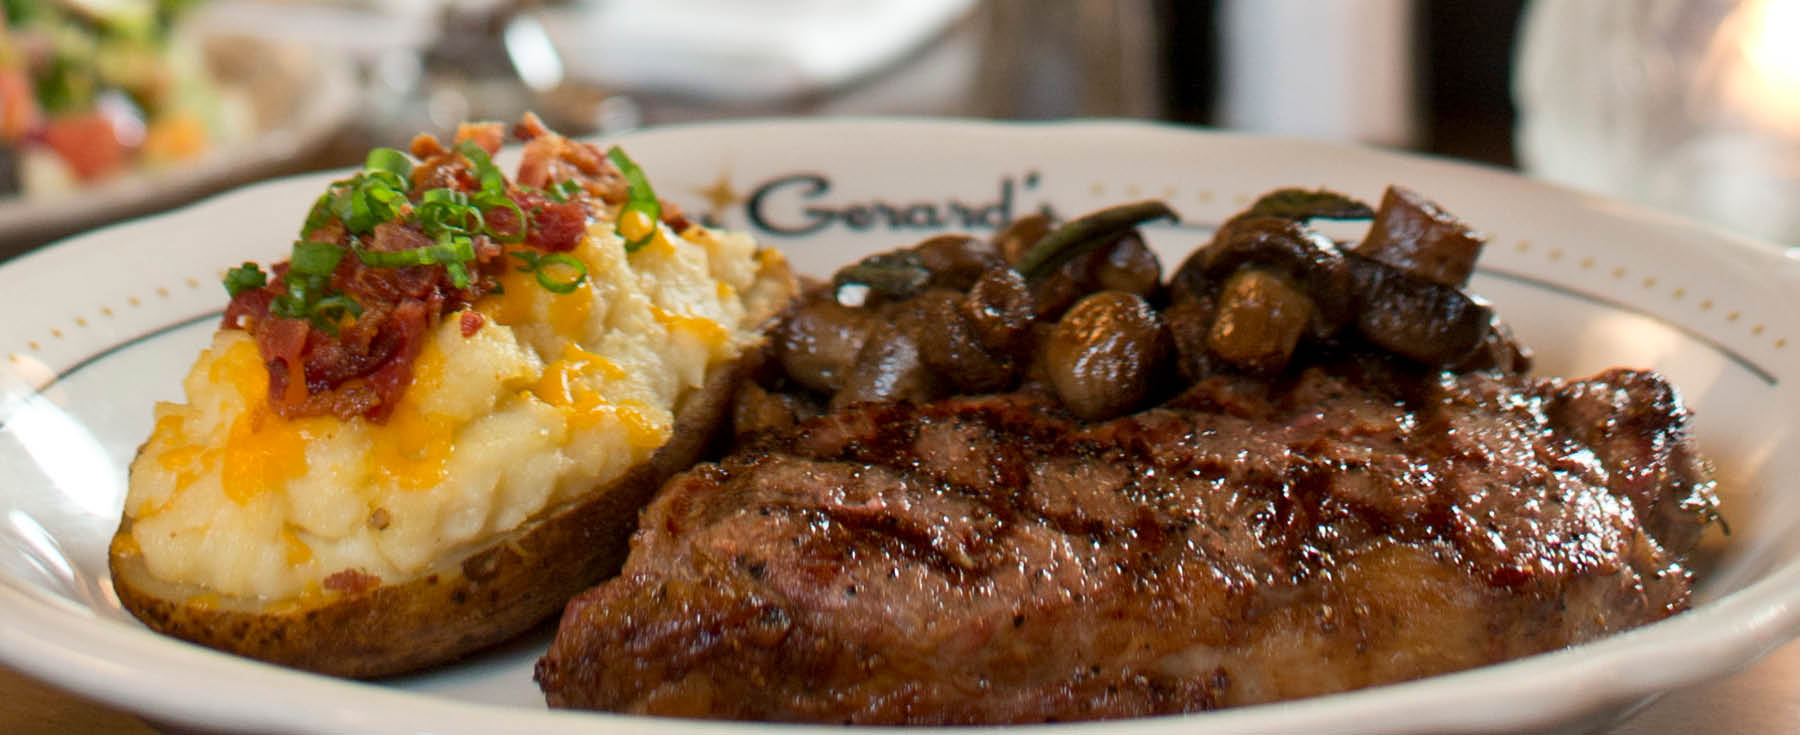 Celebrate Steak at Joey Gerard's